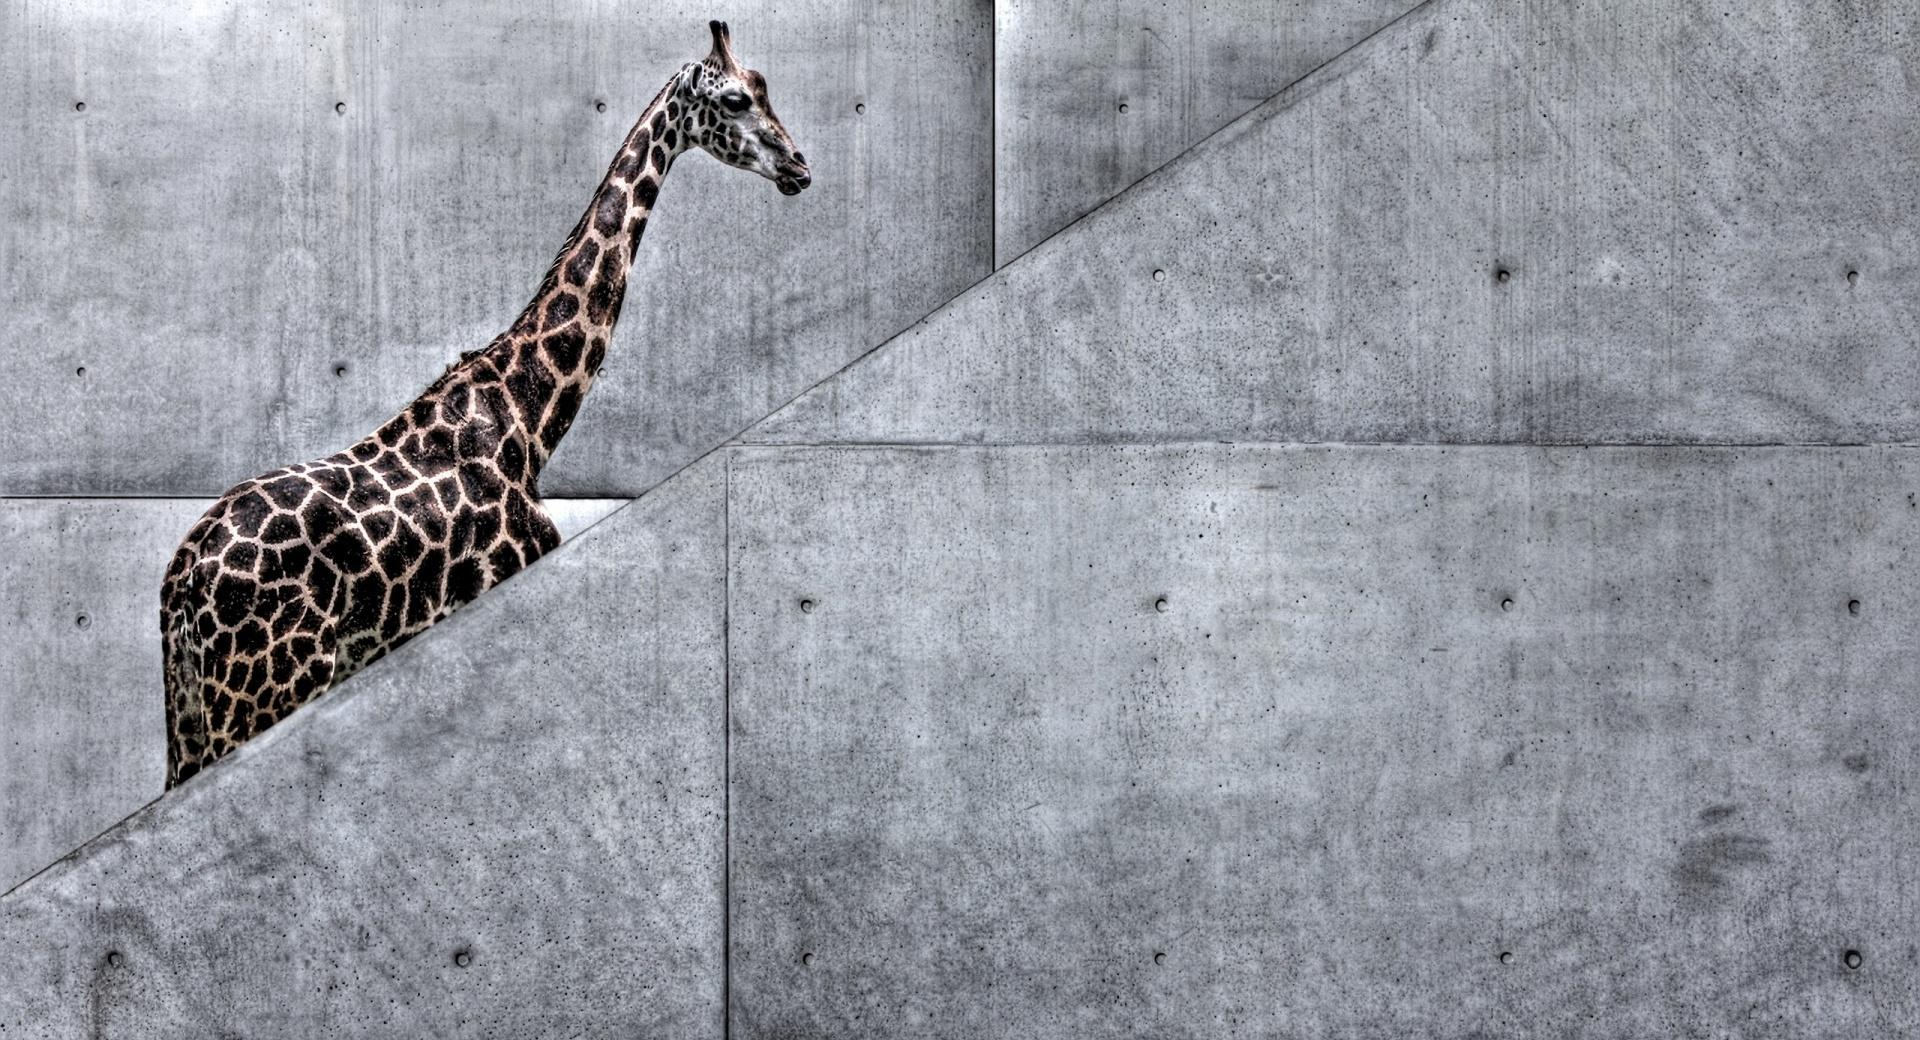 Giraffe Climbing Stairs wallpapers HD quality